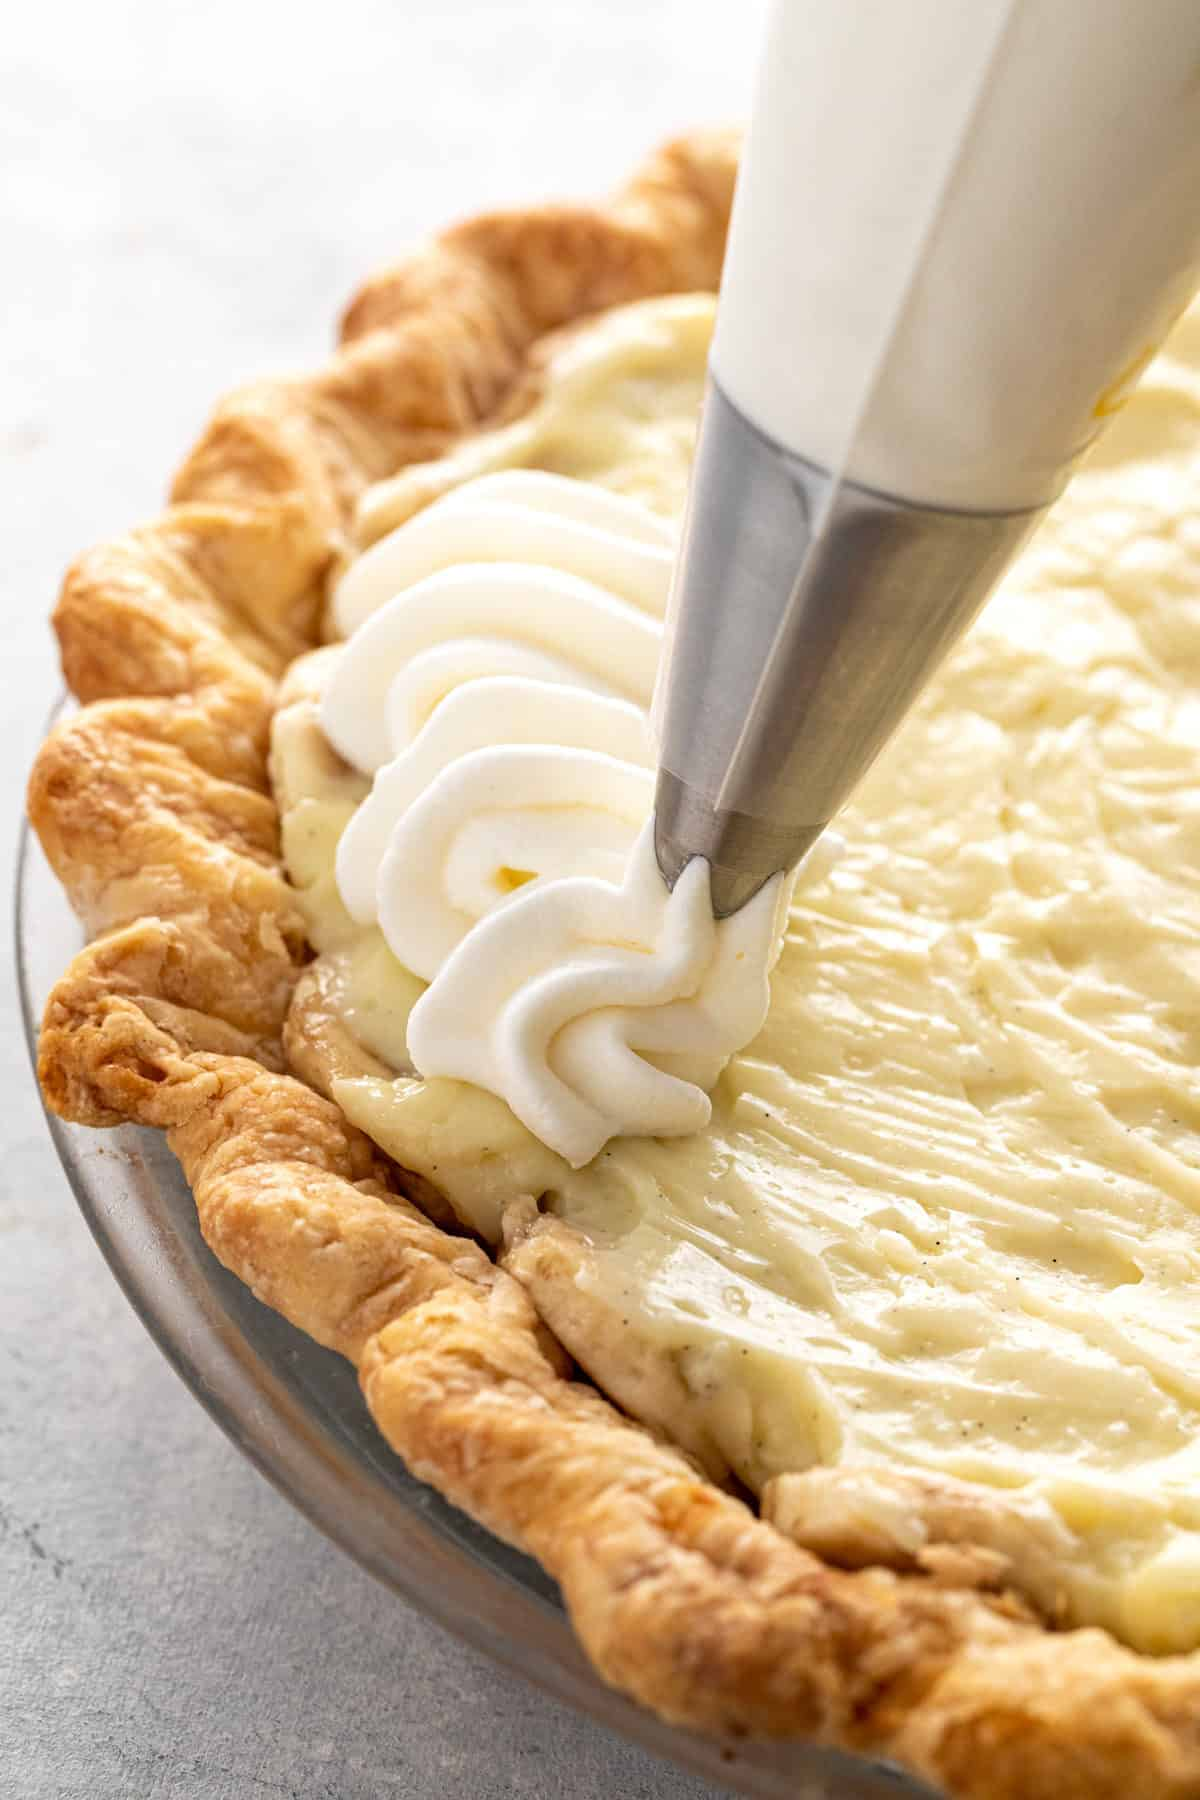 Piping whipped cream on top of a pie